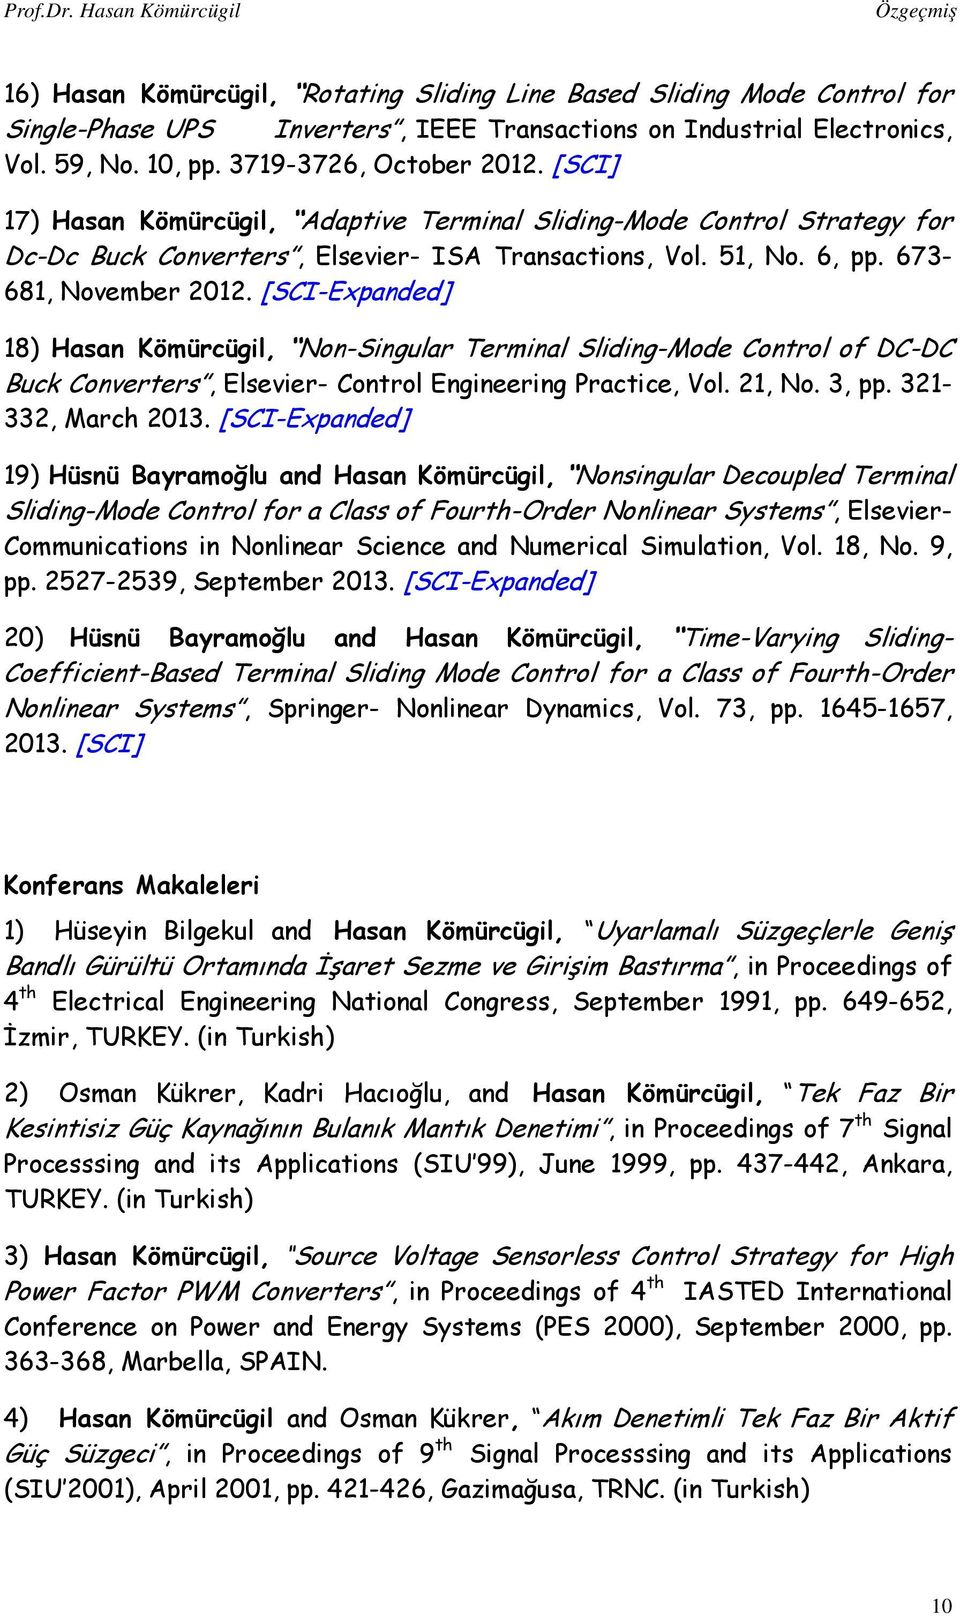 [SCI-Expanded] 18) Hasan Kömürcügil, Non-Singular Terminal Sliding-Mode Control of DC-DC Buck Converters, Elsevier- Control Engineering Practice, Vol. 21, No. 3, pp. 321-332, March 2013.